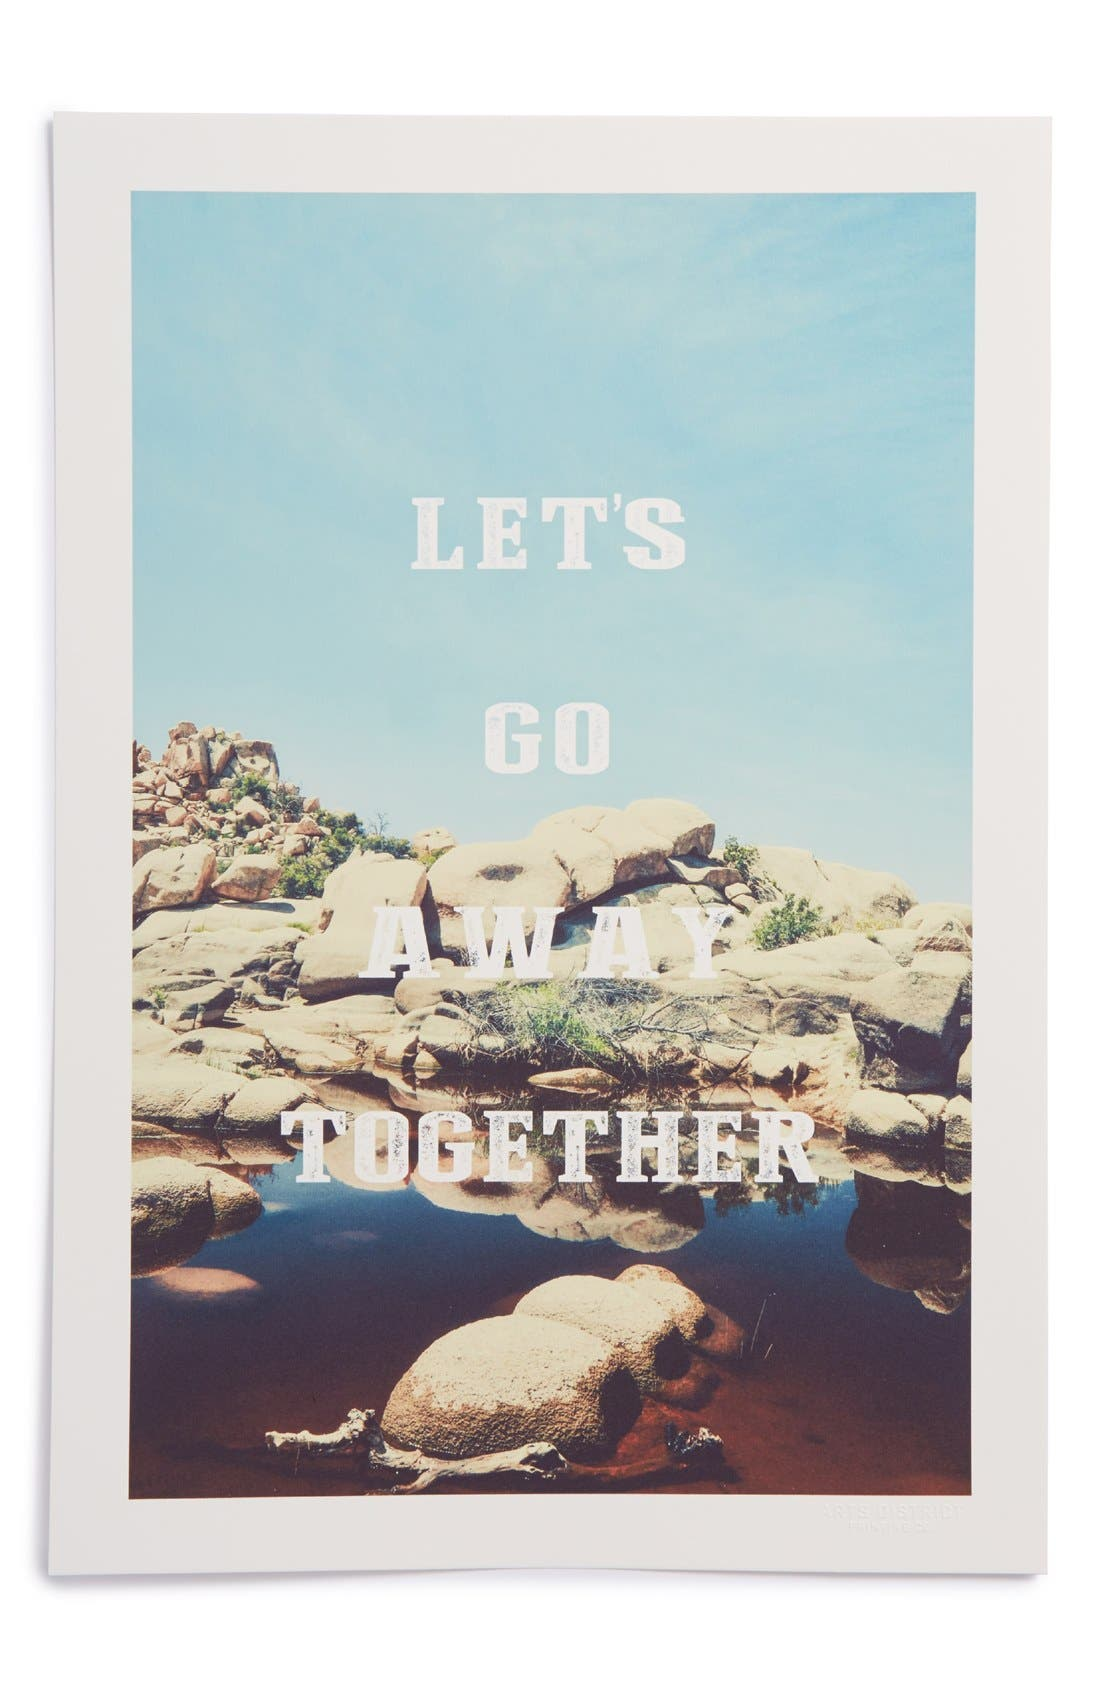 Alternate Image 1 Selected - Arts District Printing Co. 'Let's Go Away Together' Print